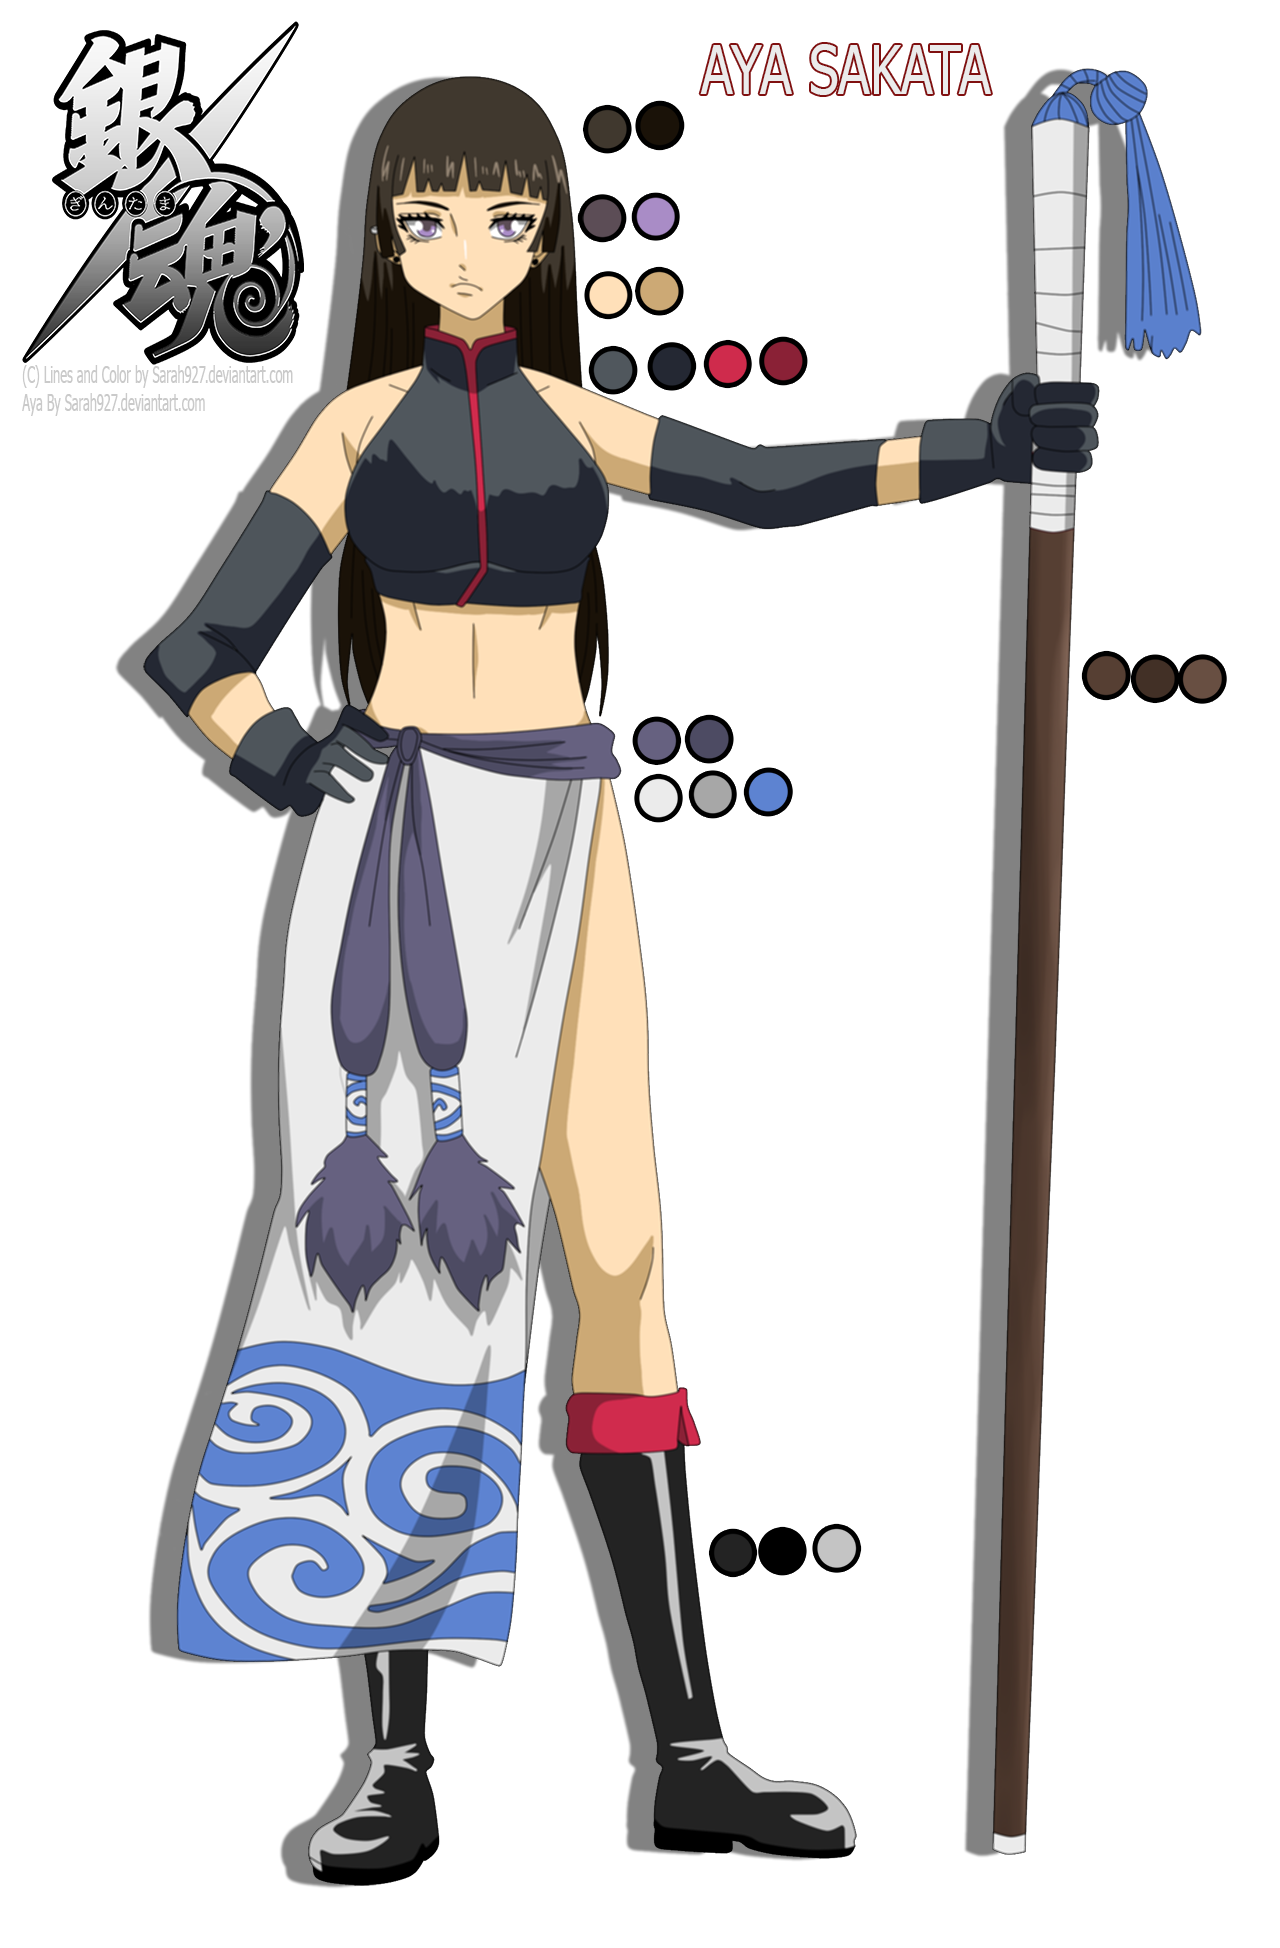 aya sakata fullbody reference anime color by sarah927artworks on